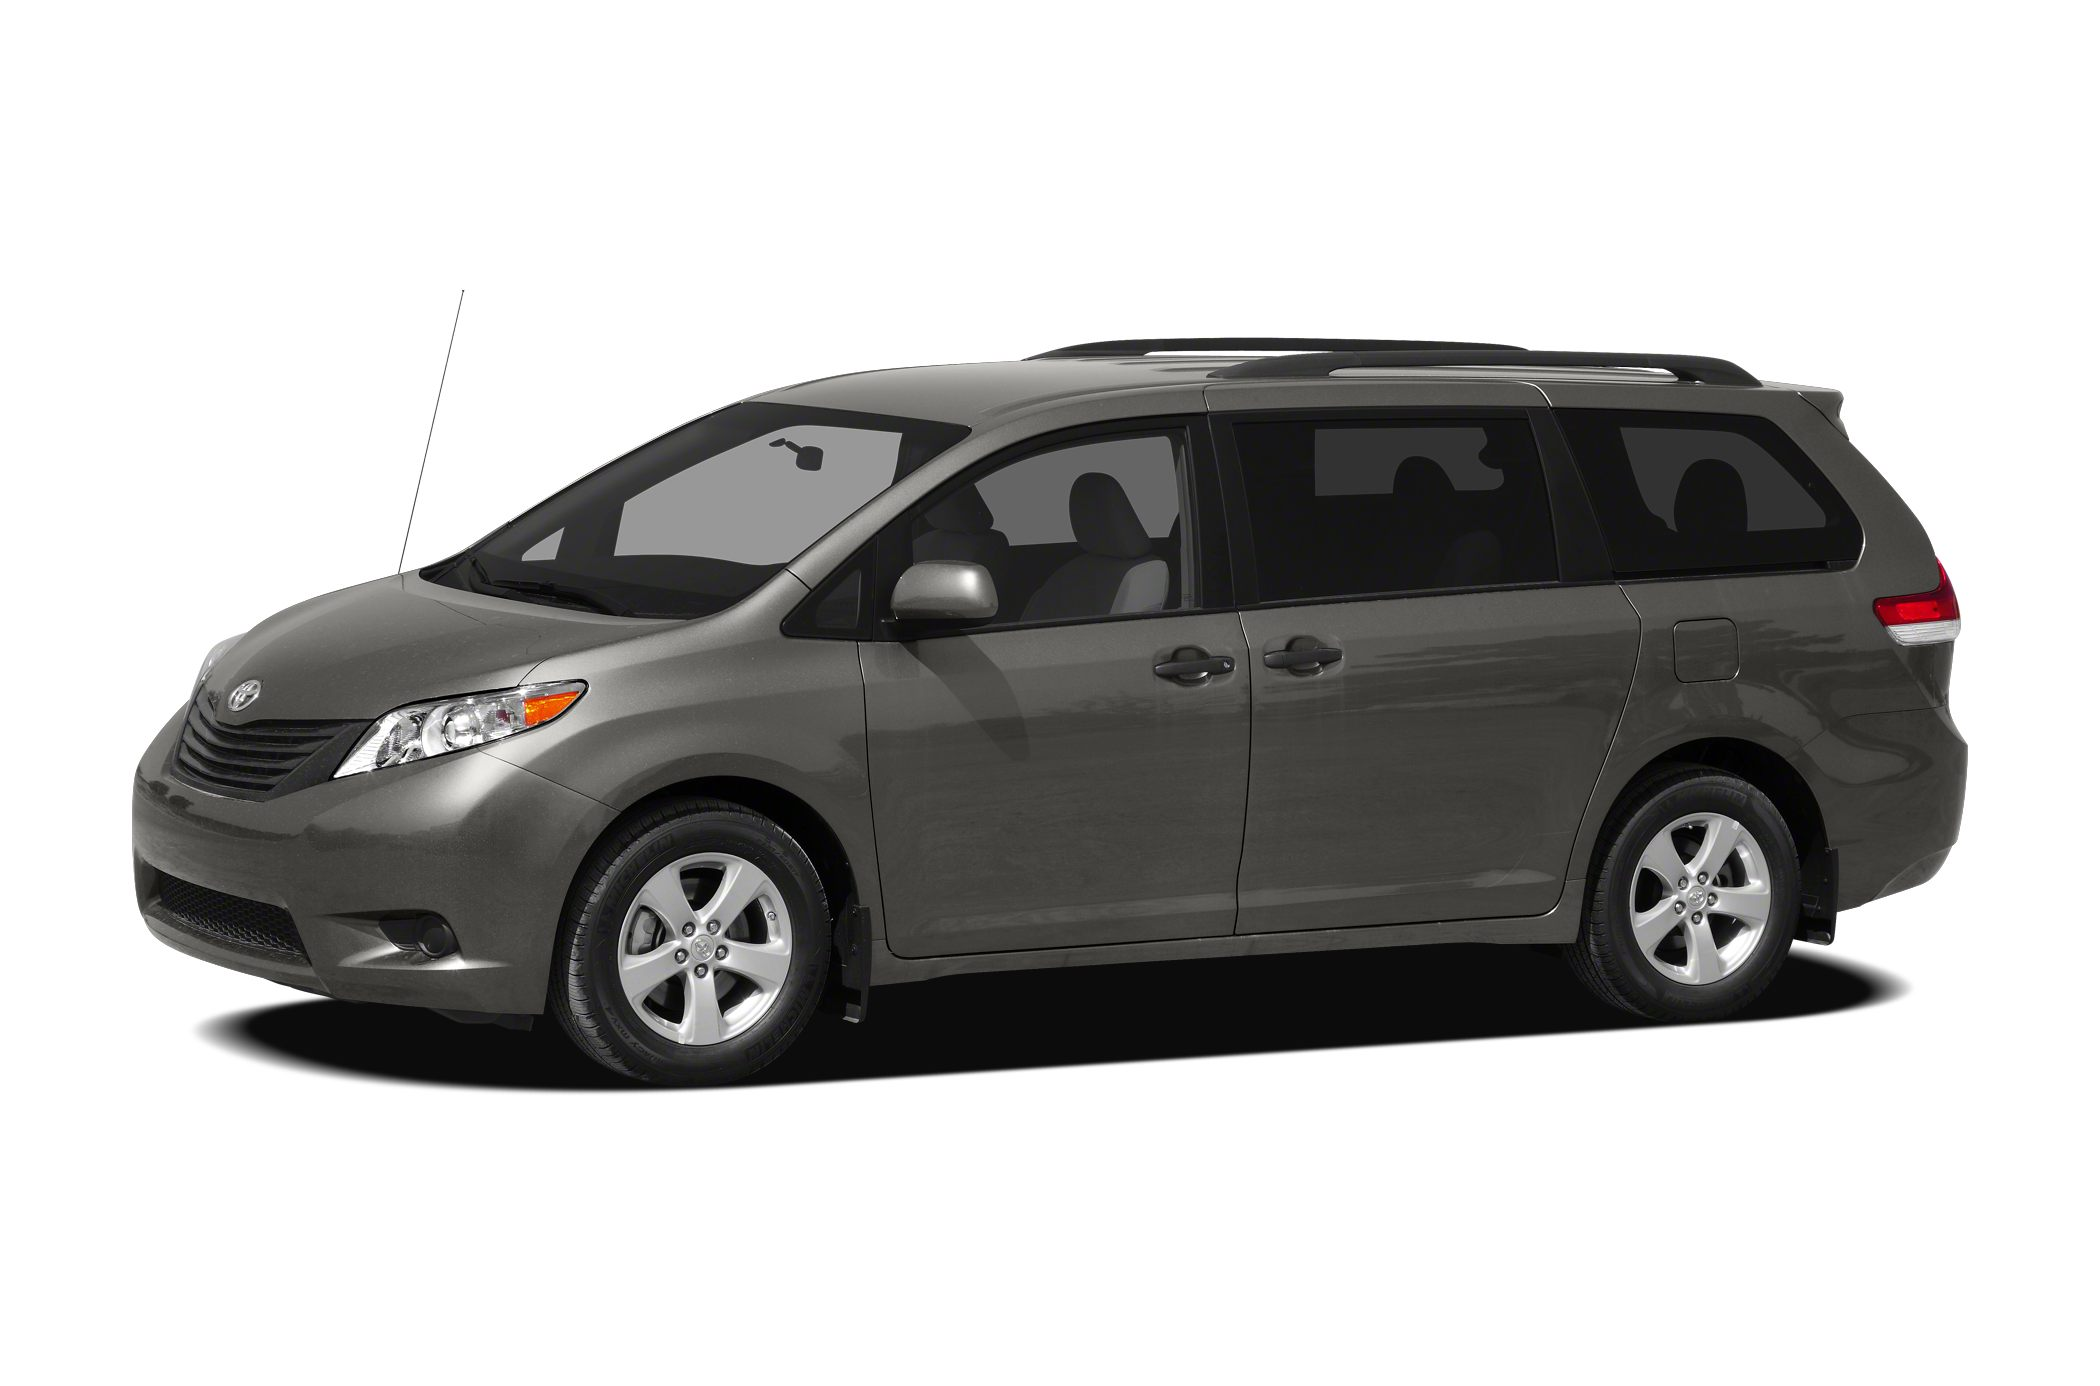 2011 Honda Odyssey Reviews - Autoblog and New Car Test Drive